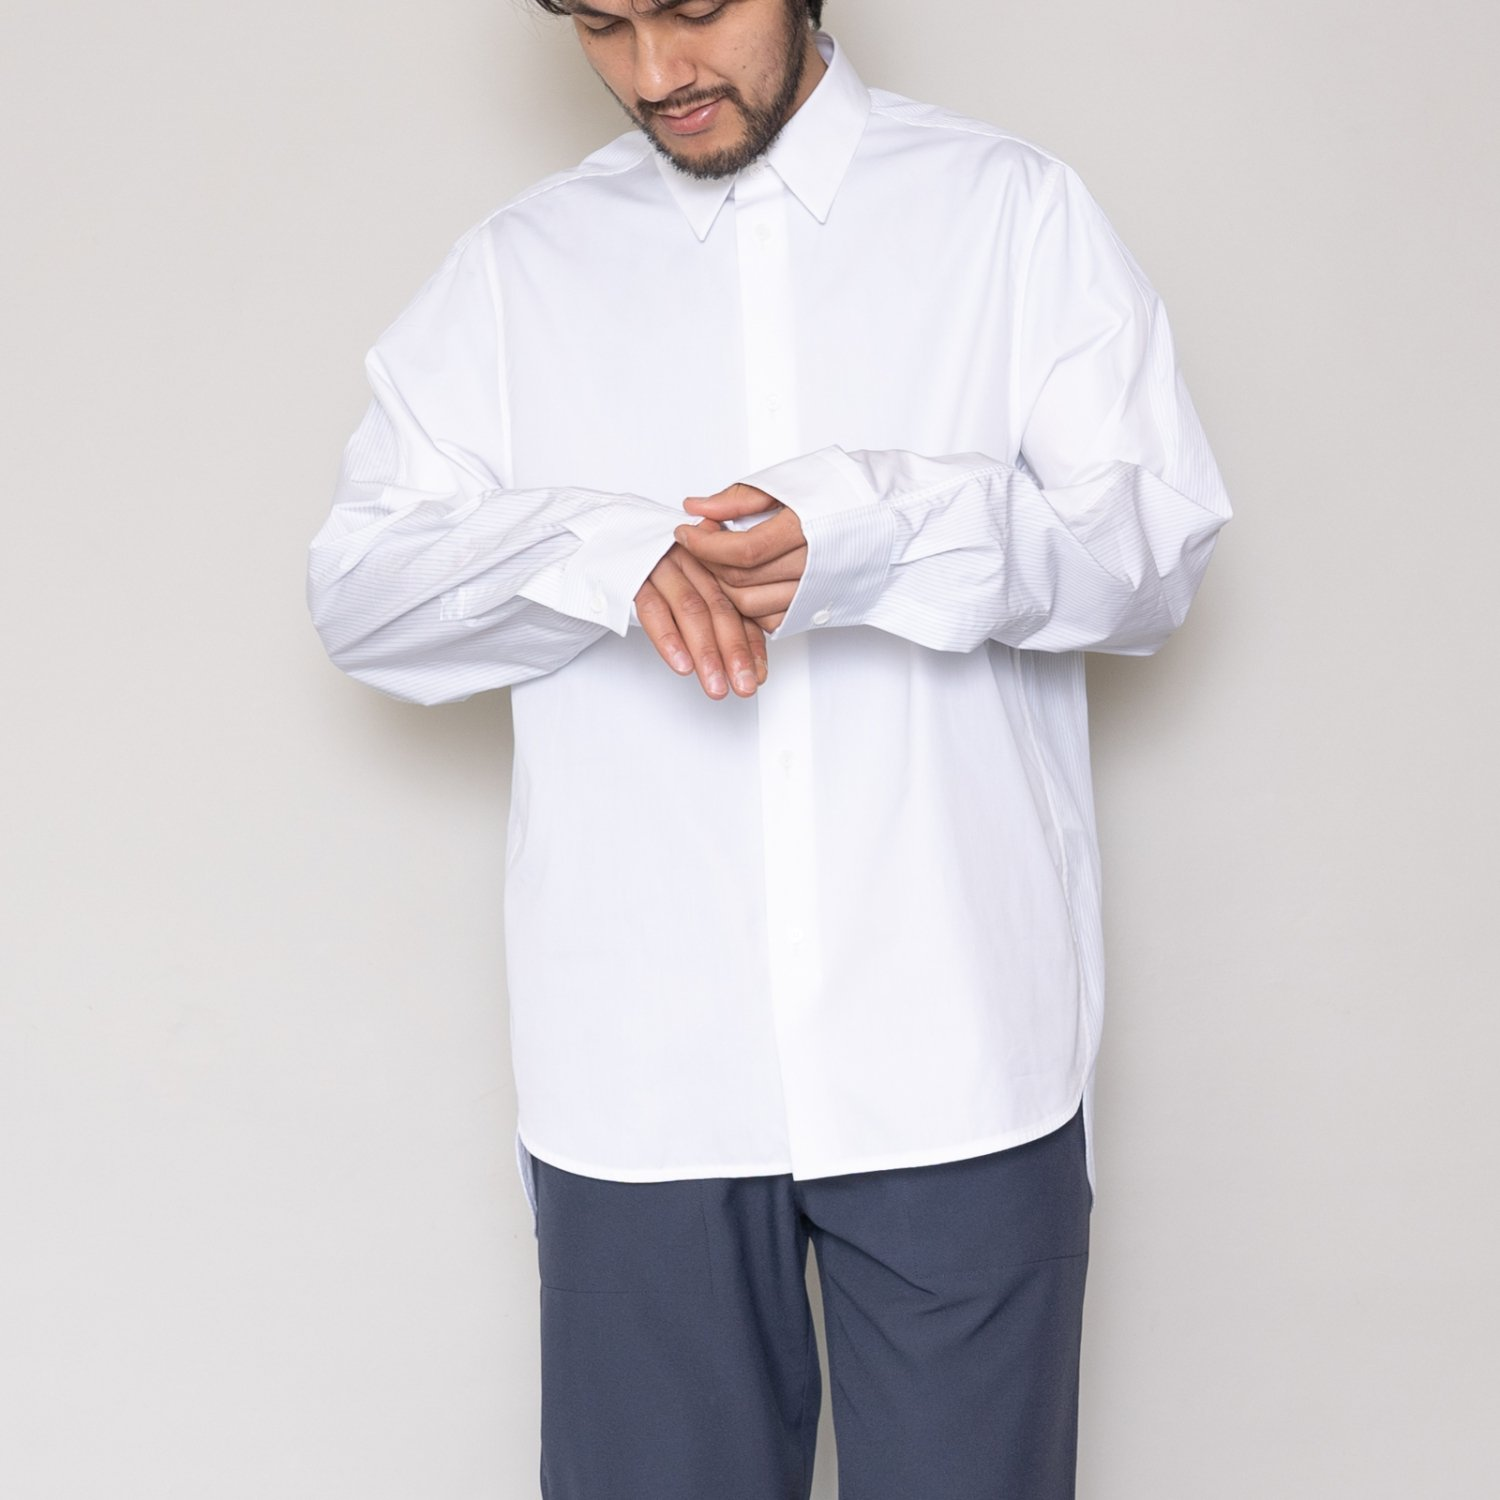 OAMC * COLLAGE SHIRT * White